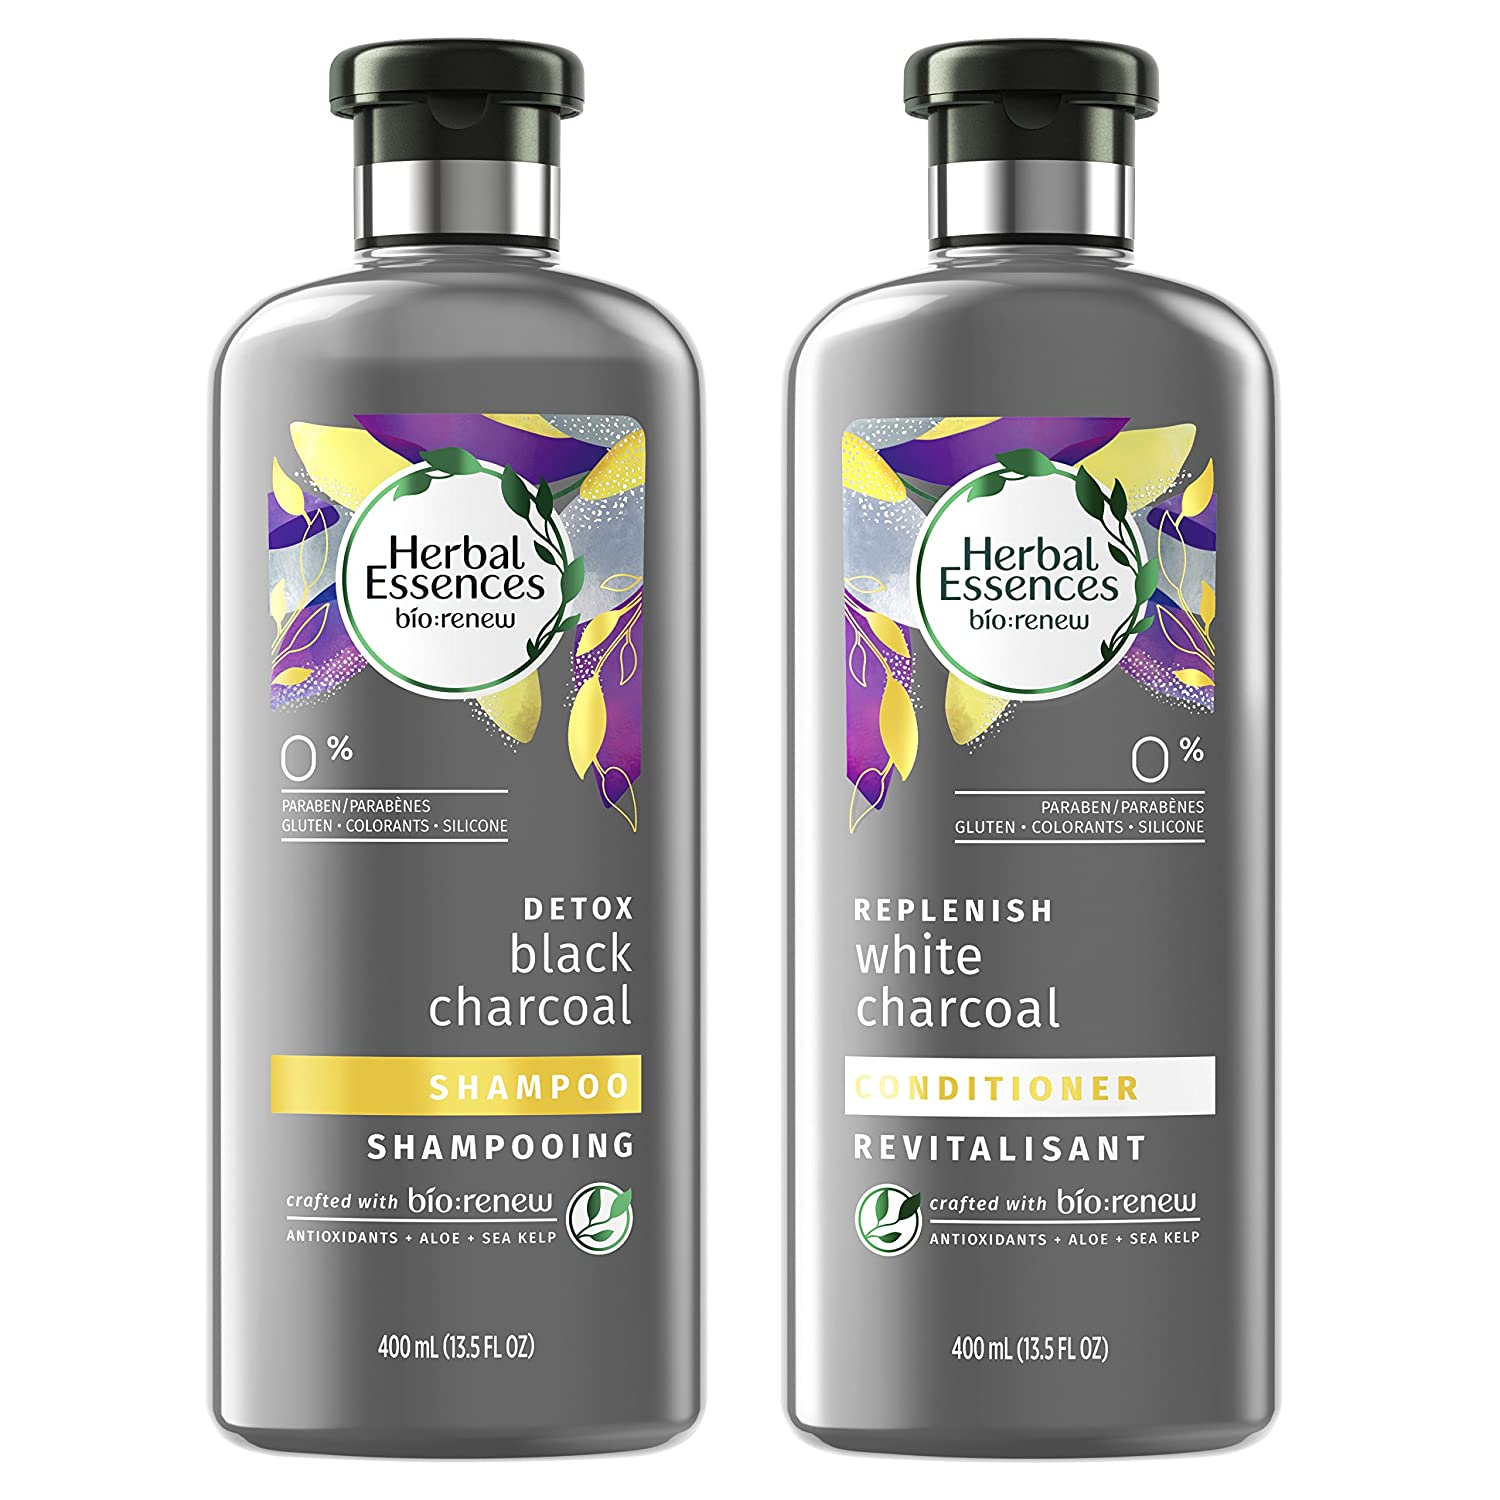 Herbal Essences Black Activated Charcoal Shampoo and White Charcoal Conditioner Set, 13.5 FL OZ Each (Pack of 2) - Biorenew Procter & Gamble Haba Hub